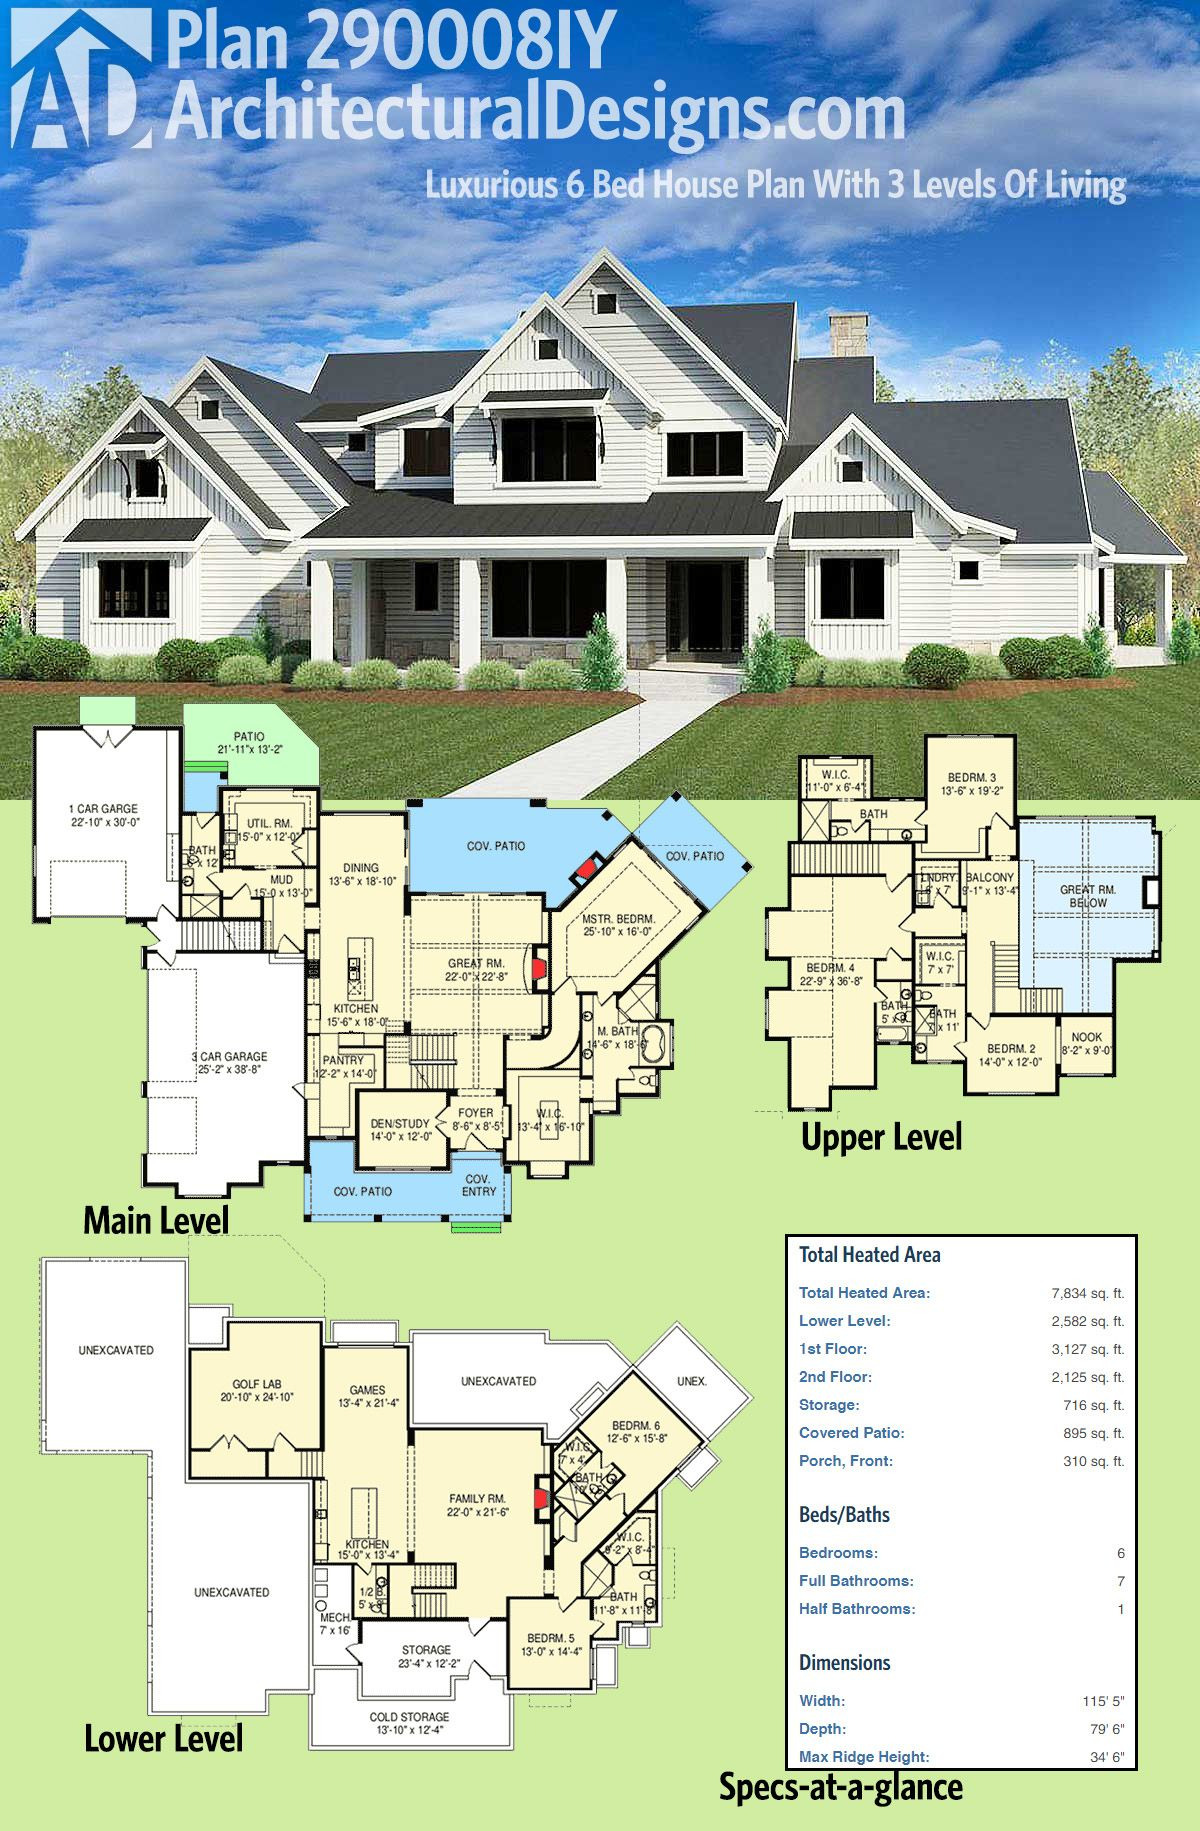 Architectural Designs Luxury House Plans Inspirational Plan Iy Luxurious 6 Bed House Plan with 3 Levels